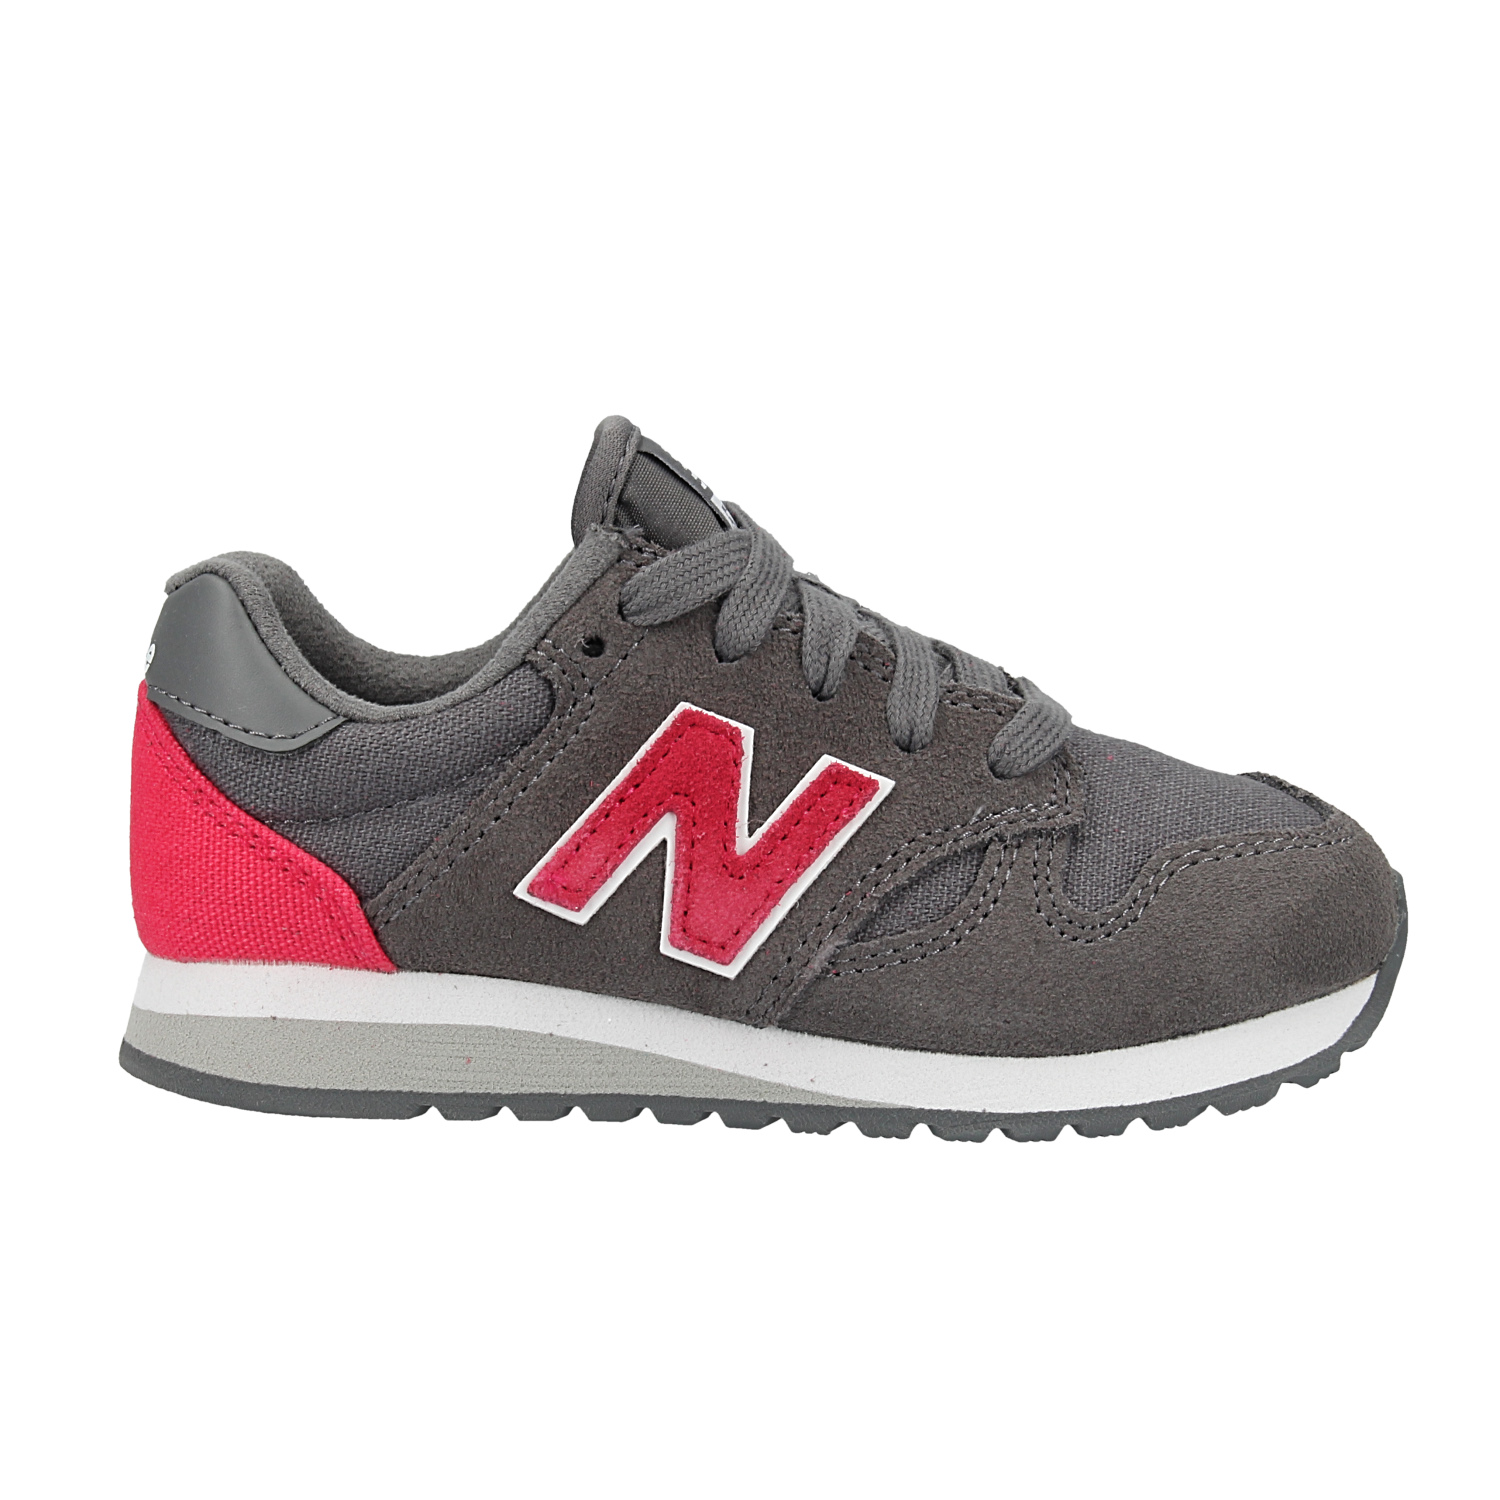 NEW BALANCE ténis KL520- BGY(a partir do 28 ao 40)